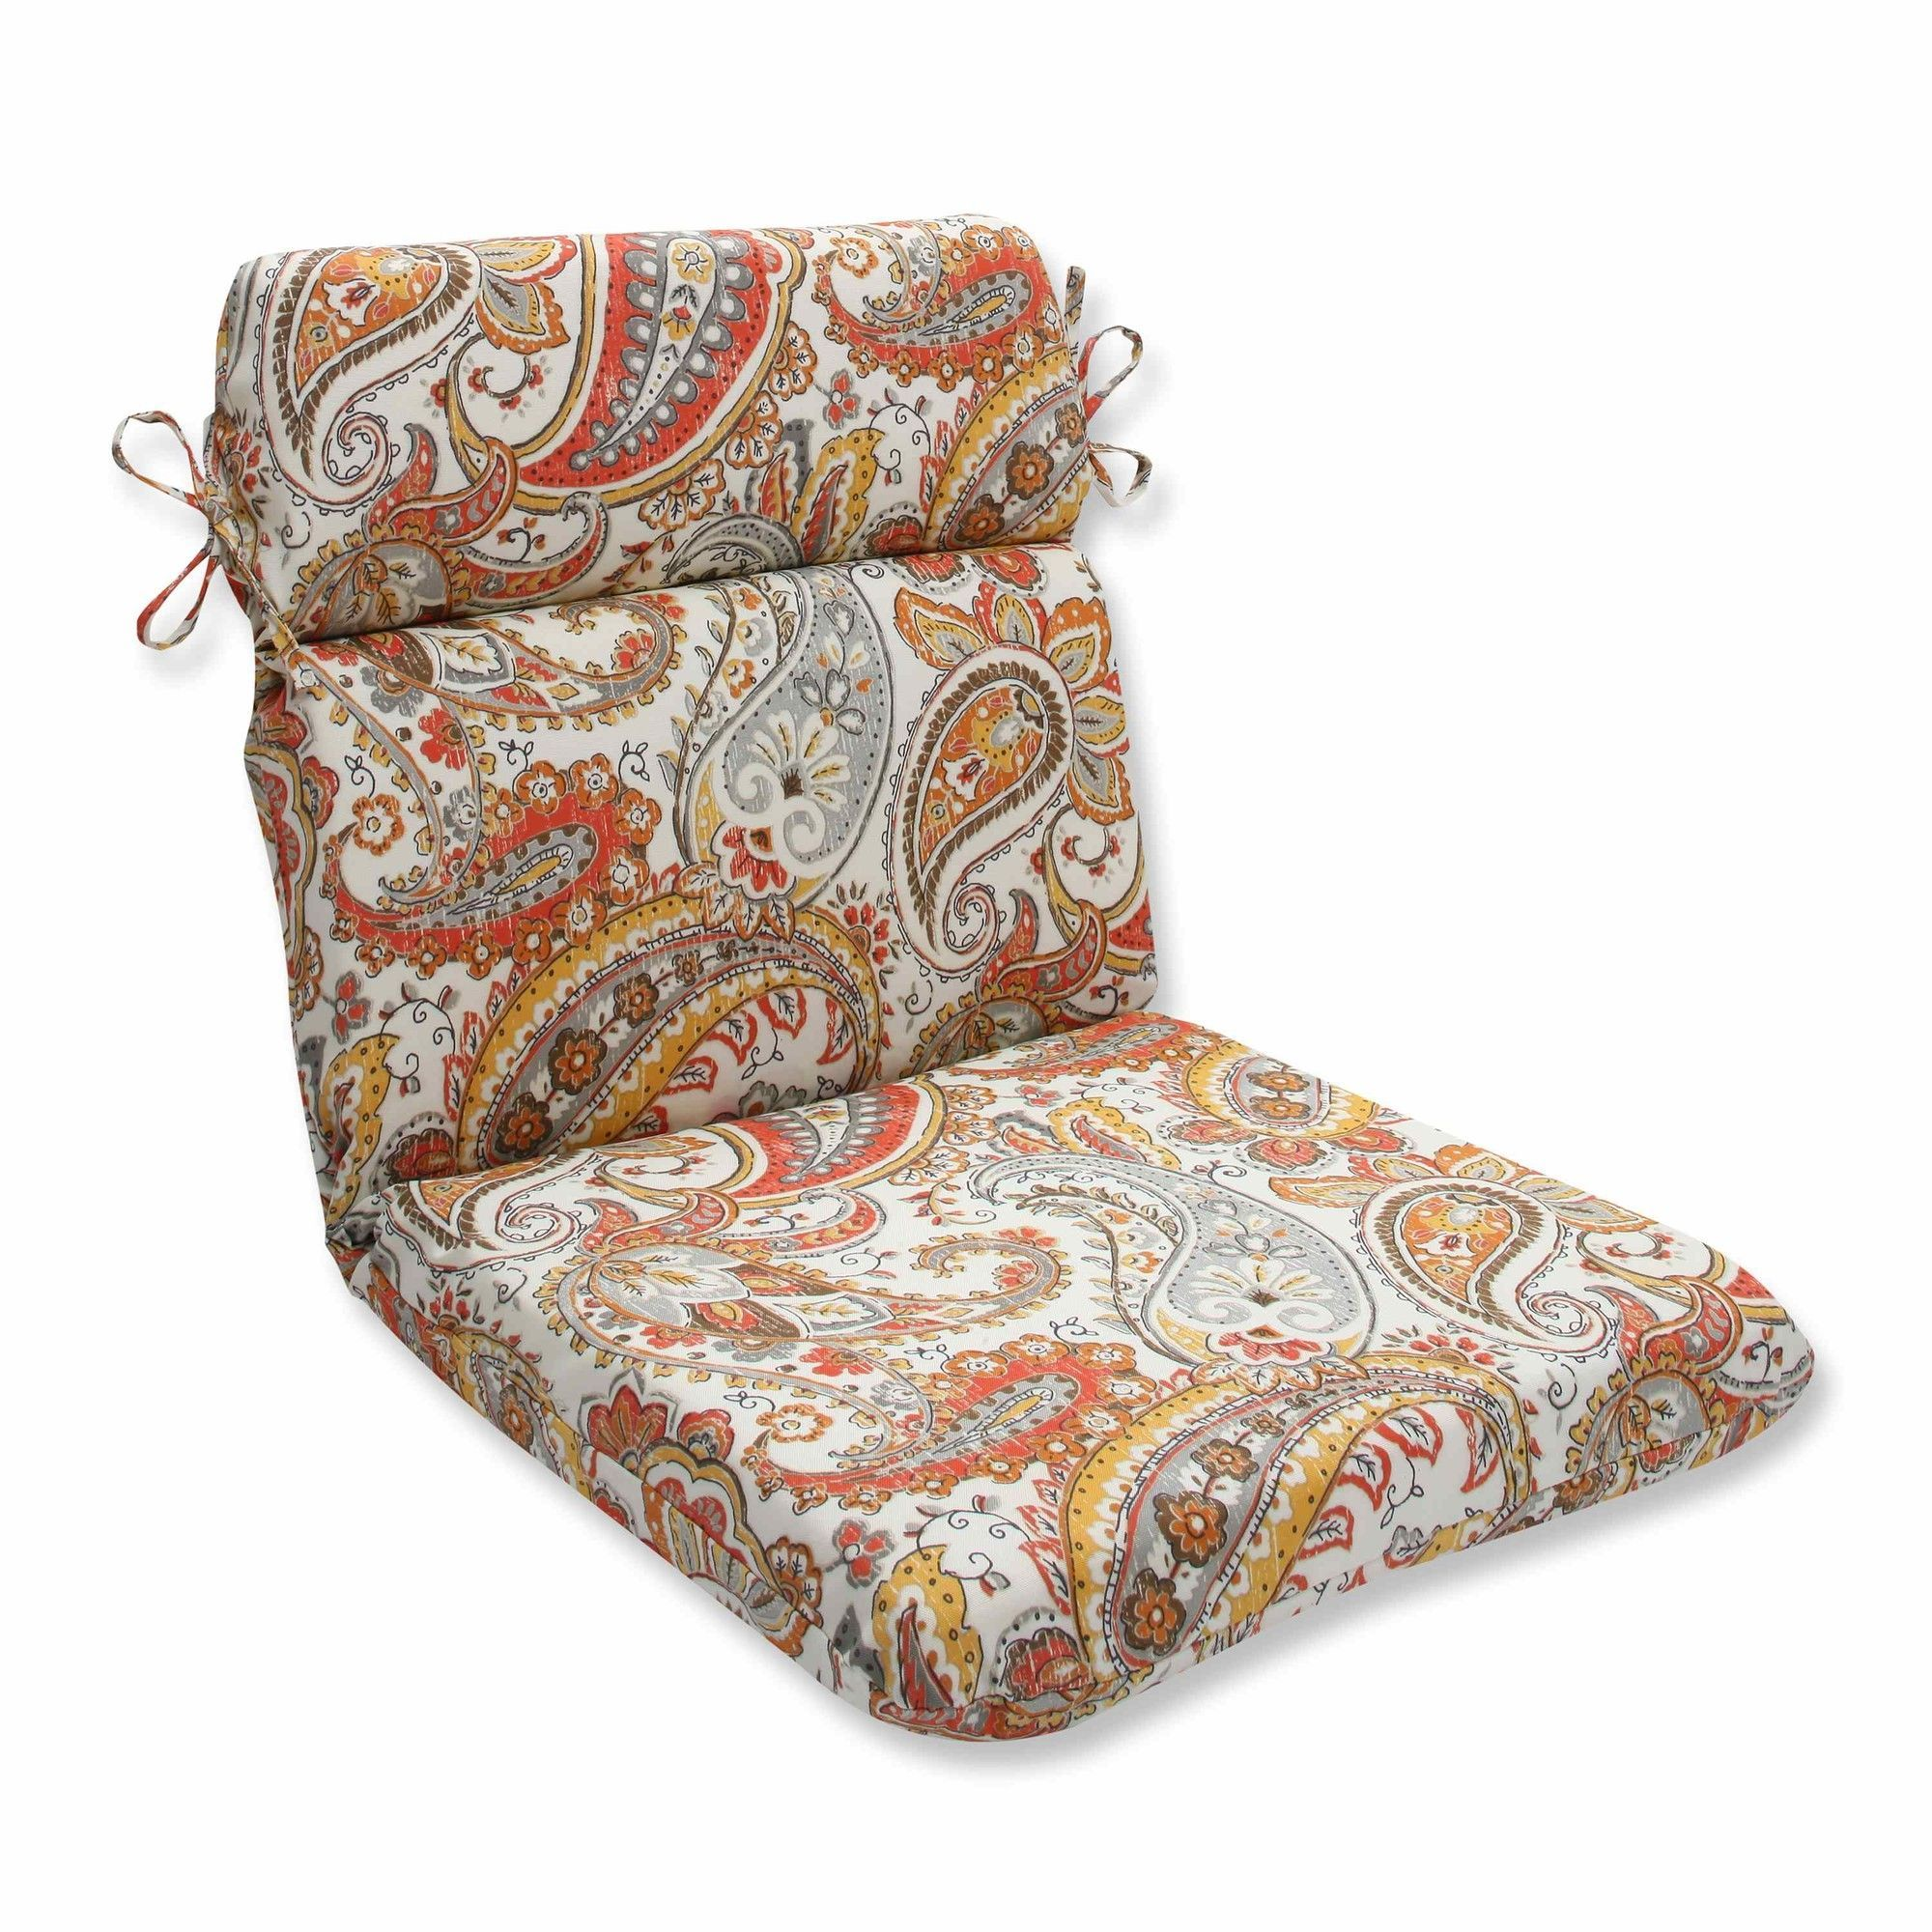 Hadia sunset outdoor dining chair cushion dining chair cushions